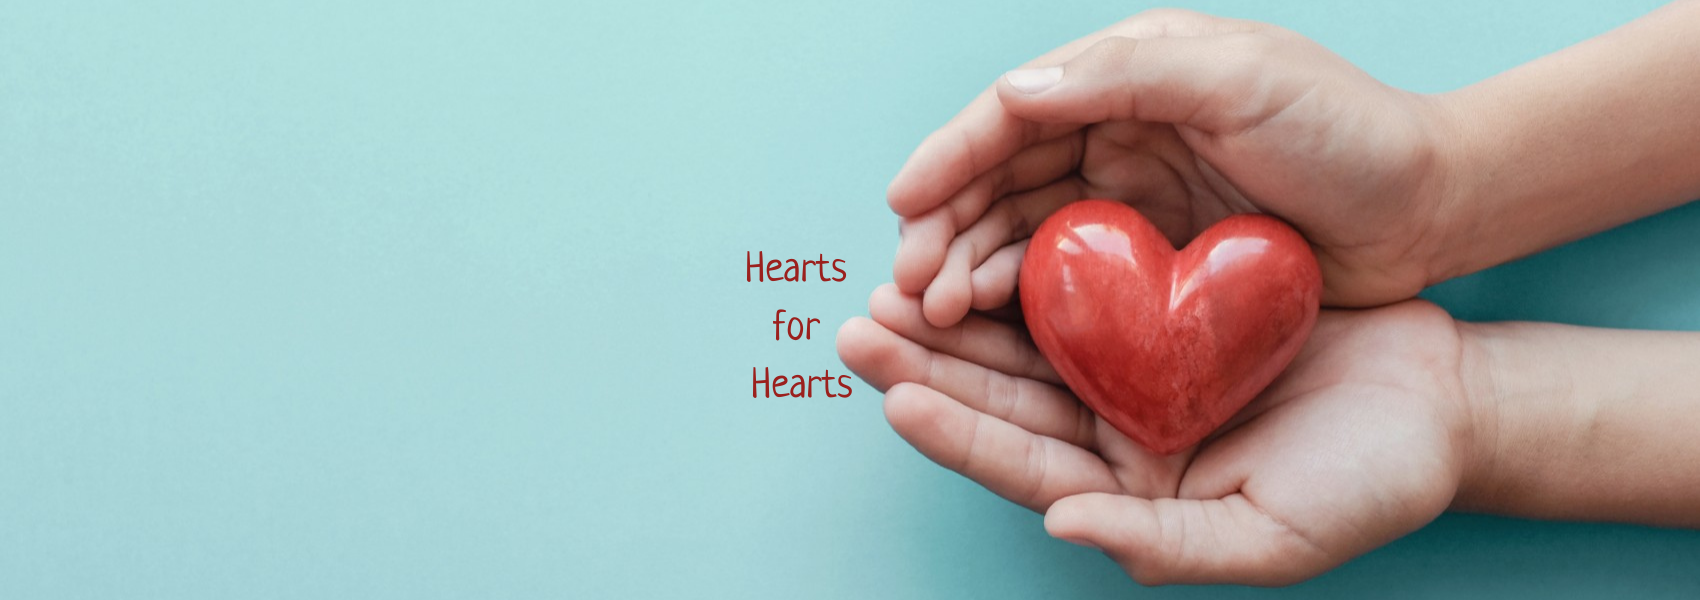 Become the heartbeat of our community